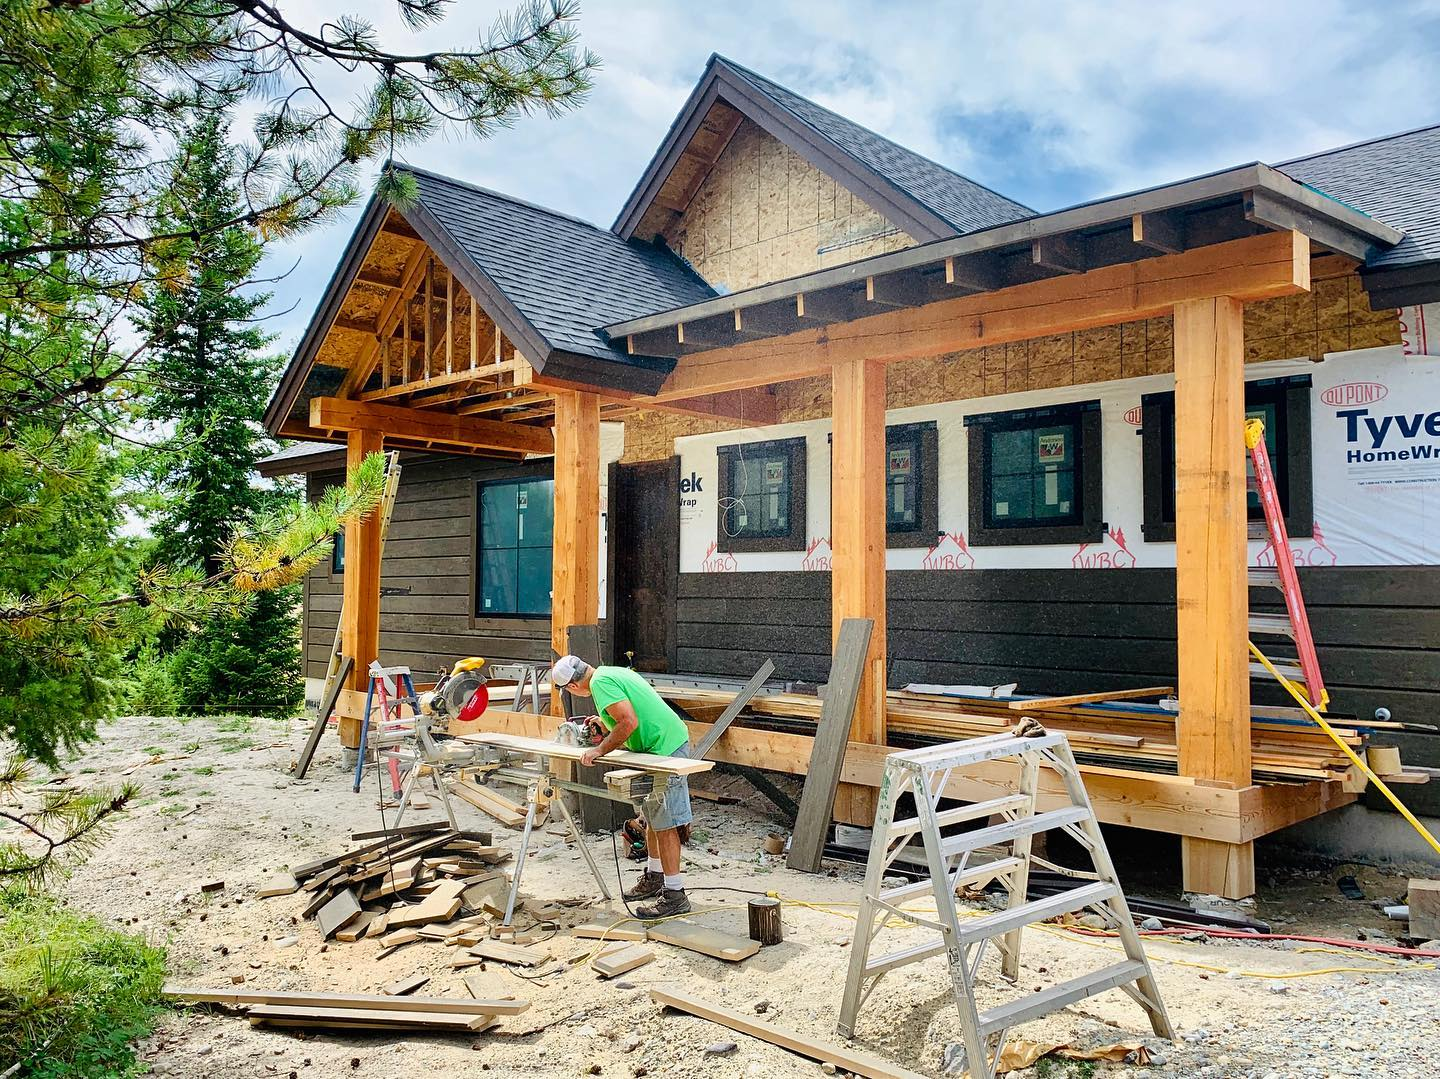 Spec house!! We are onto installing rick, wood floors and siding! Yippee! whitefish custom home builder